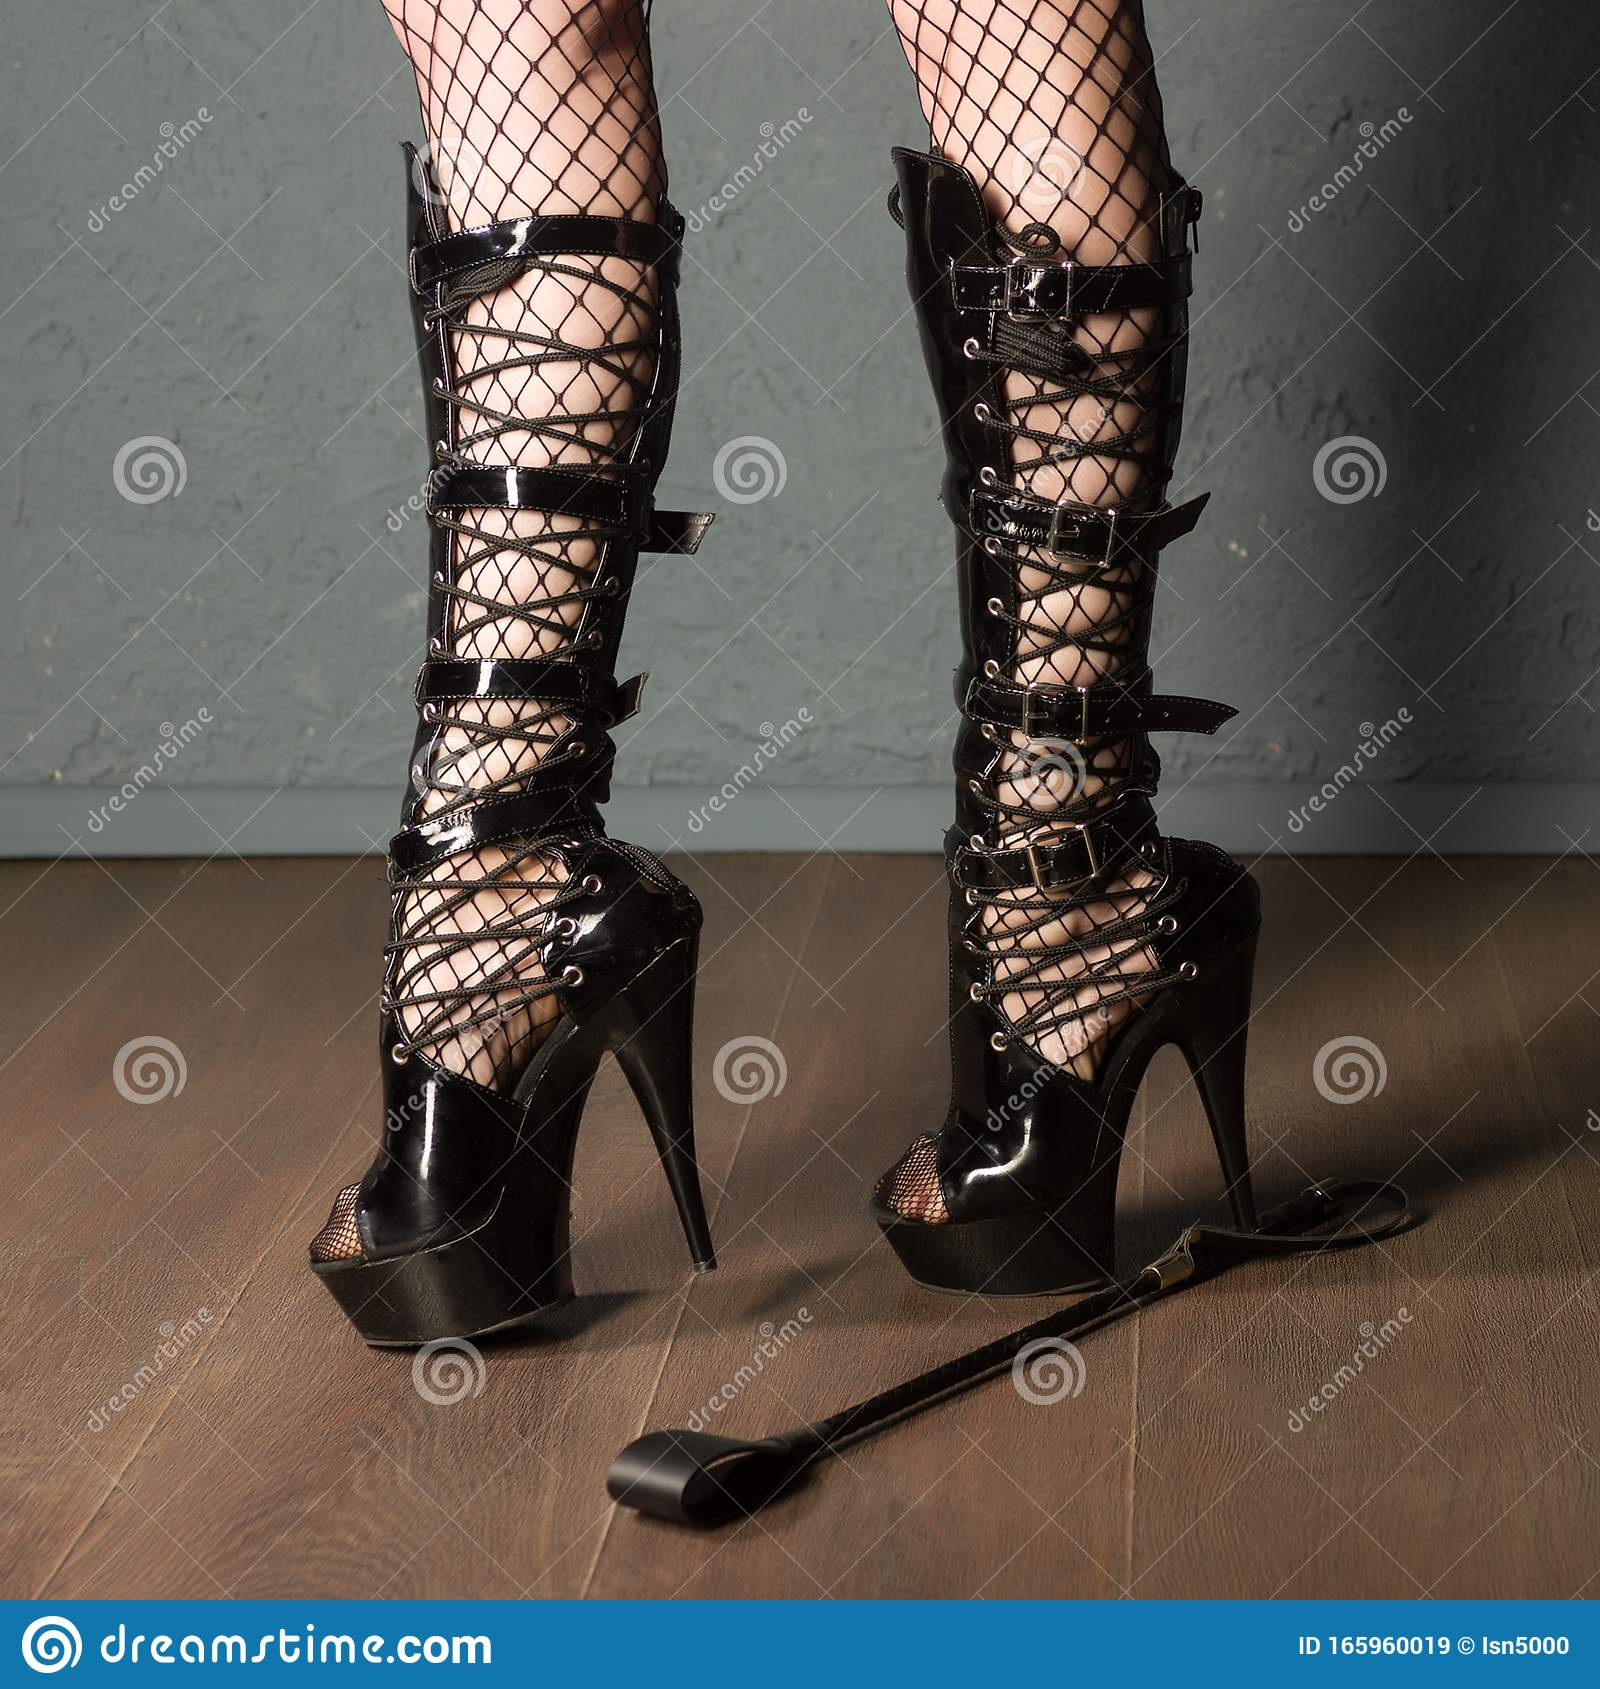 Adult Sex Games Girl Legs In Fishnet And High Heels Fetish Boots